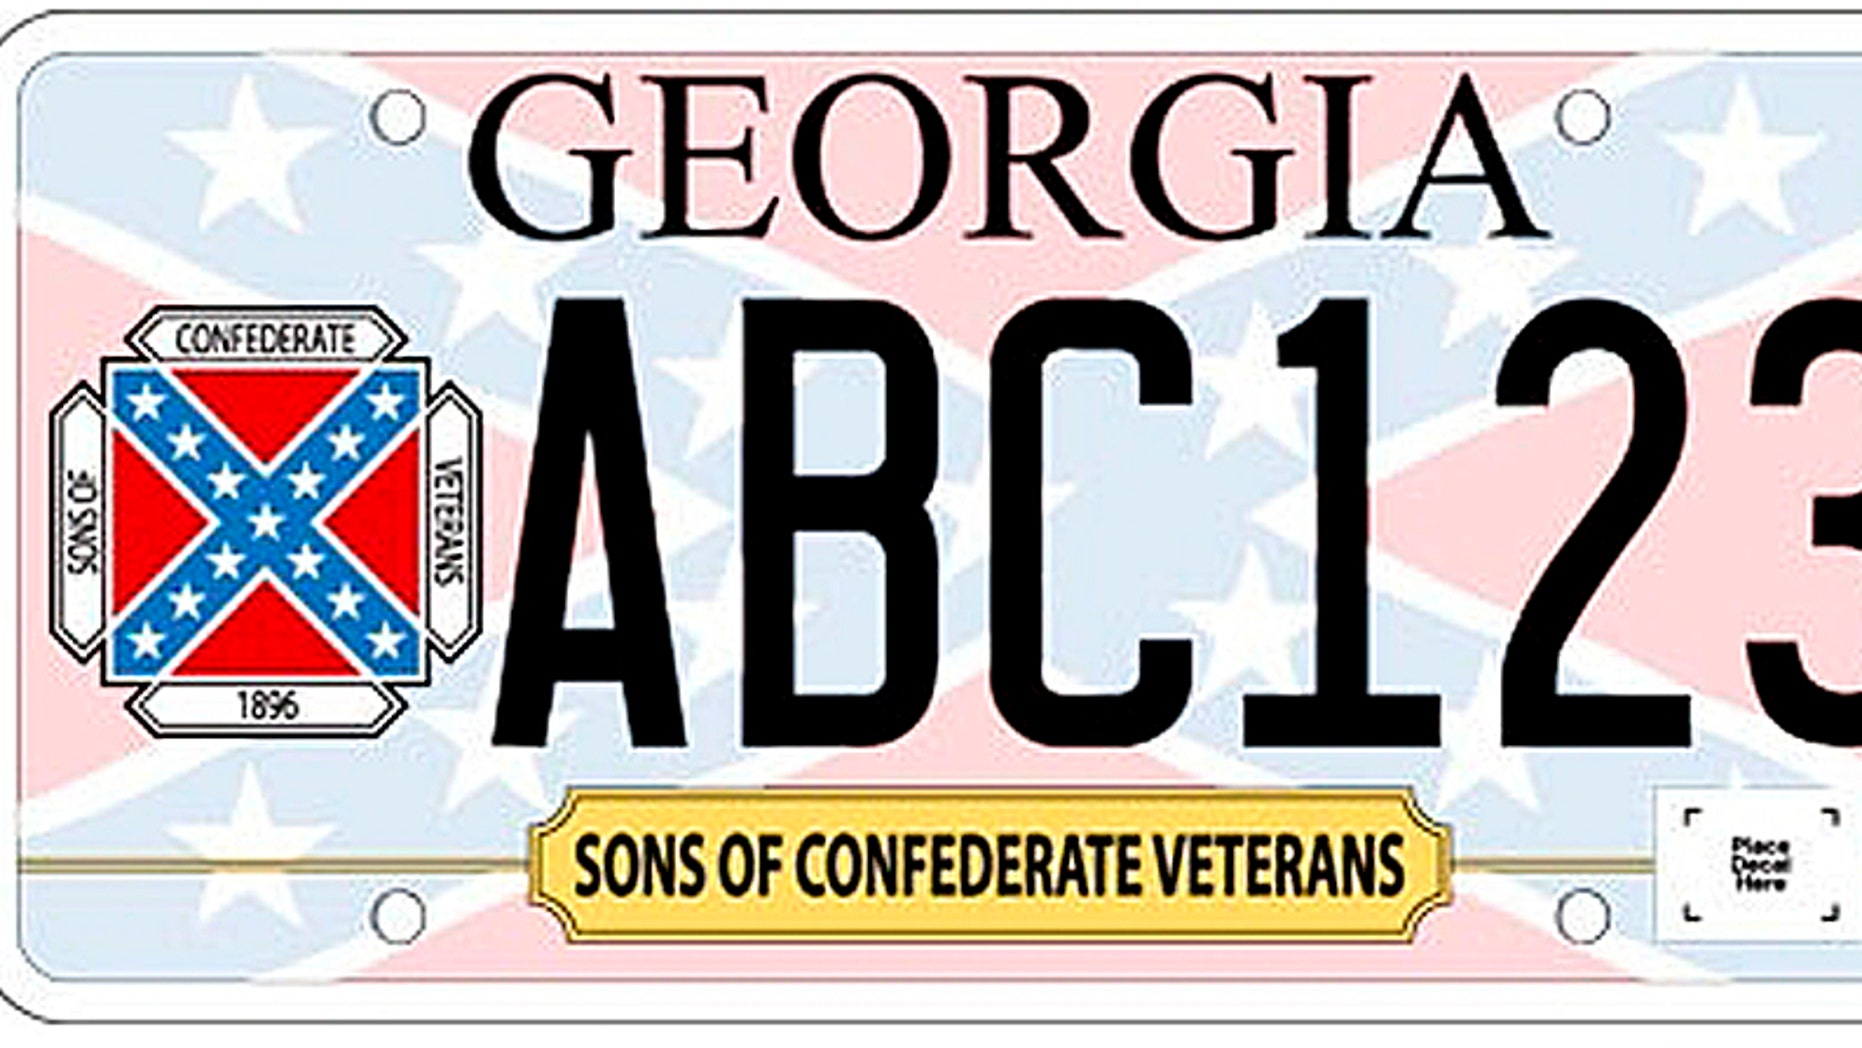 In this undated image released by the Georgia Department of Revenue, a new Georgia car tag is shown. Georgia officials are releasing a specialty license plate featuring the Confederate battle flag, infuriating civil rights advocates and renewing a fiery debate. The Georgia Division of the Sons of Confederate Veterans requested that the state issue the new plates. A spokesman says it meant no offense and that people have a right to commemorate their heritage.(AP Photo/Georgia Department of Revenue)